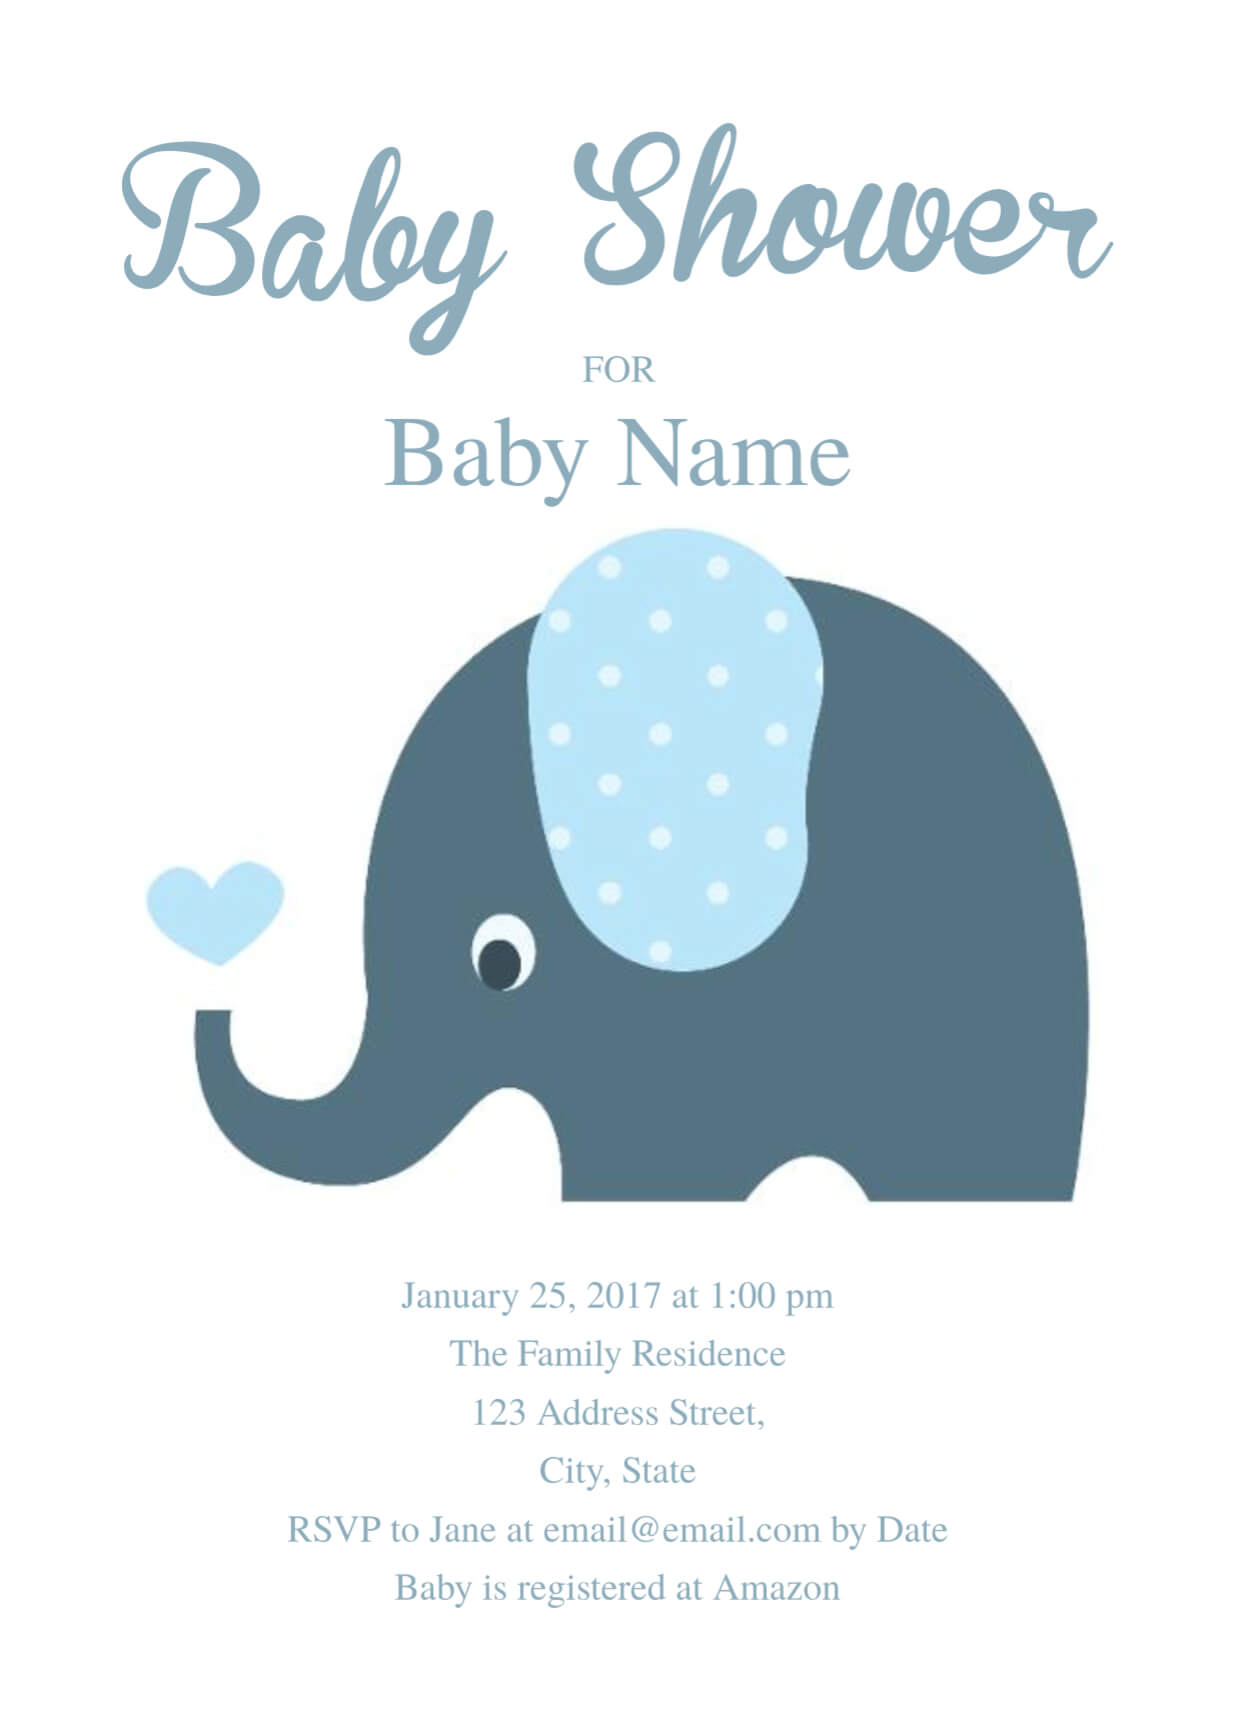 Cute Elephant Baby Shower Invitation Template | Free with Blank Elephant Template